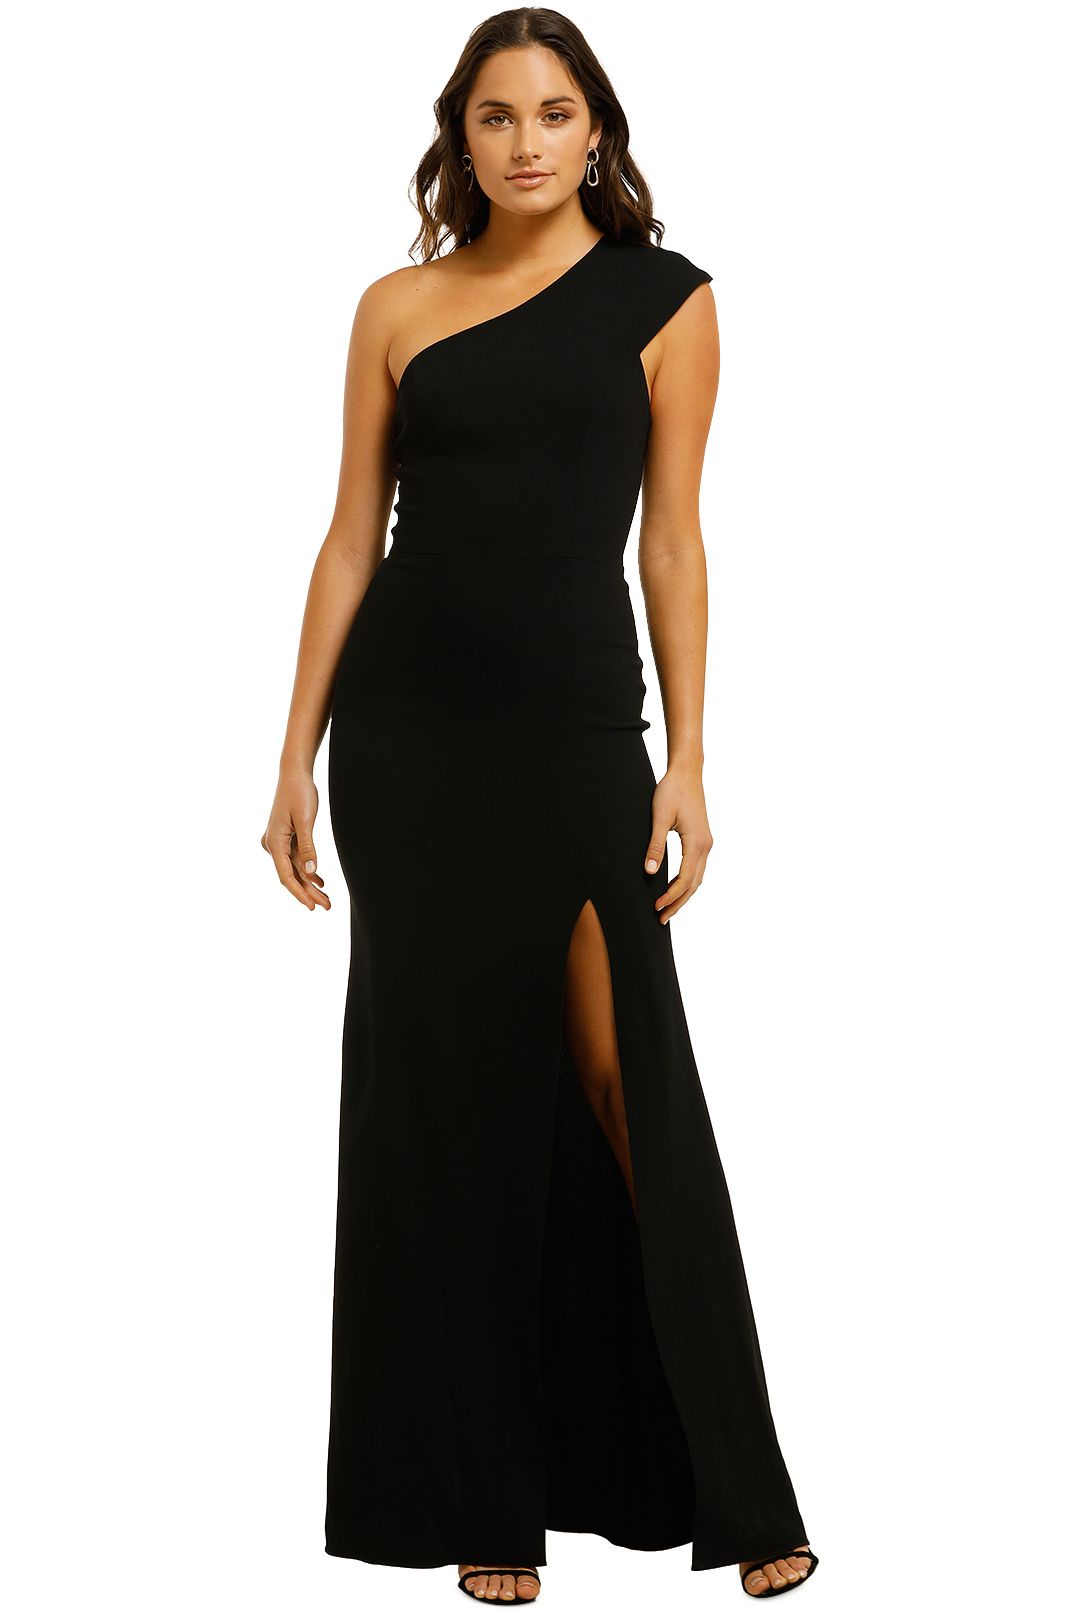 Ginger-and-Smart-Elixer-Gown-Black-Front